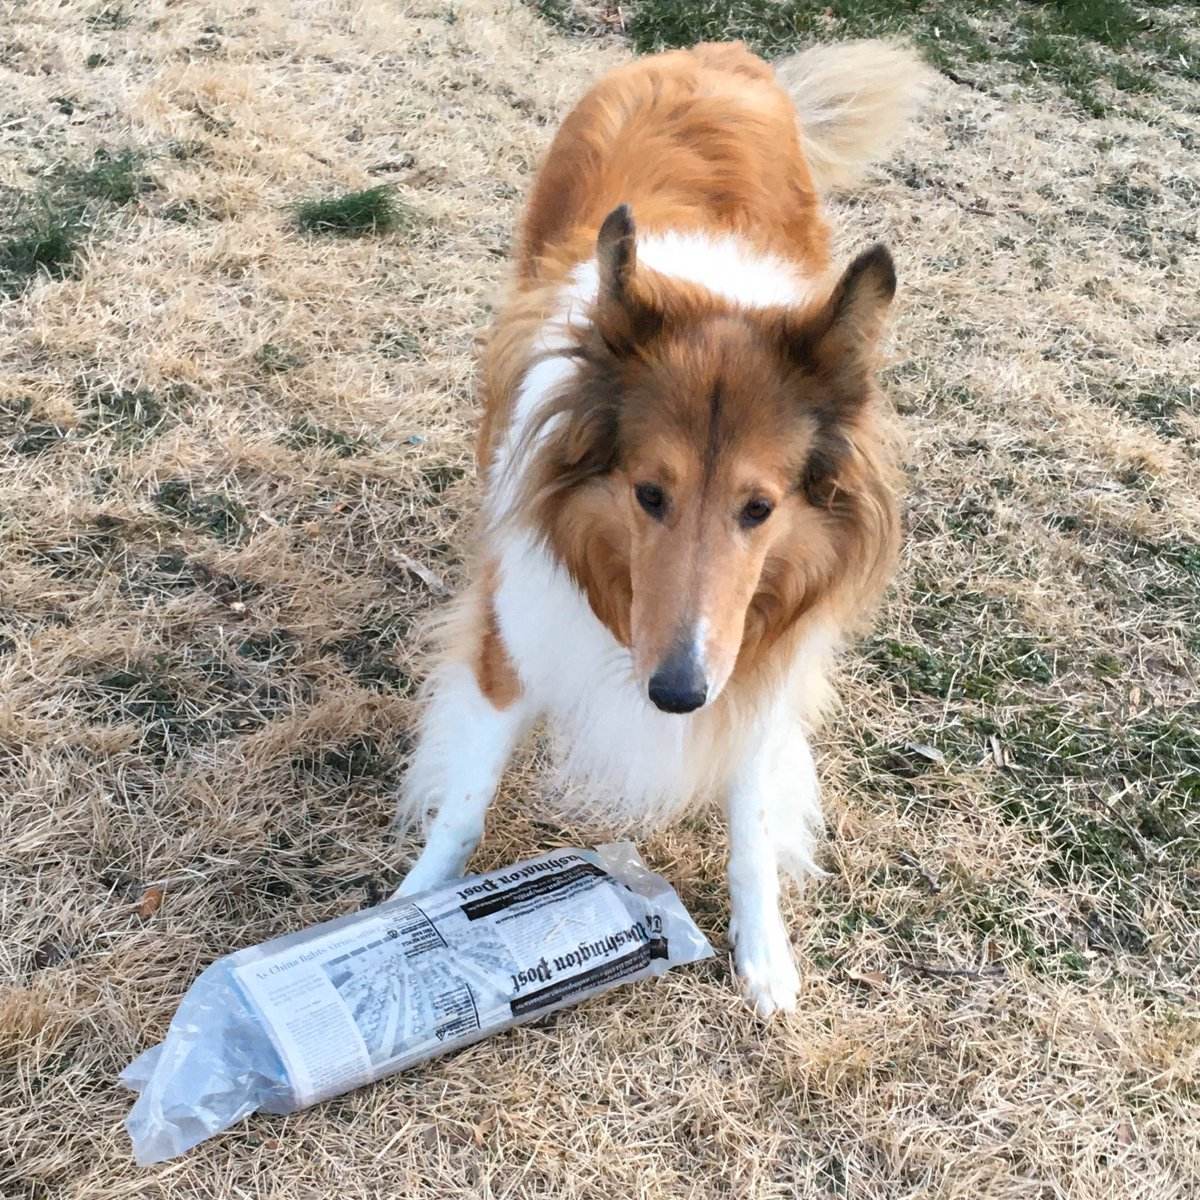 Extra! Extra! Read all about it!   Griffin the #EnglishGolden is teaching me to #fetch the  #newspaper   Shout out to our local  paper @washingtonpost   #collie #englishgoldenretriever #newspaperdelivery #washingtonpost #ExtraExtraReadAllAboutItpic.twitter.com/4UX6ZVmLU9